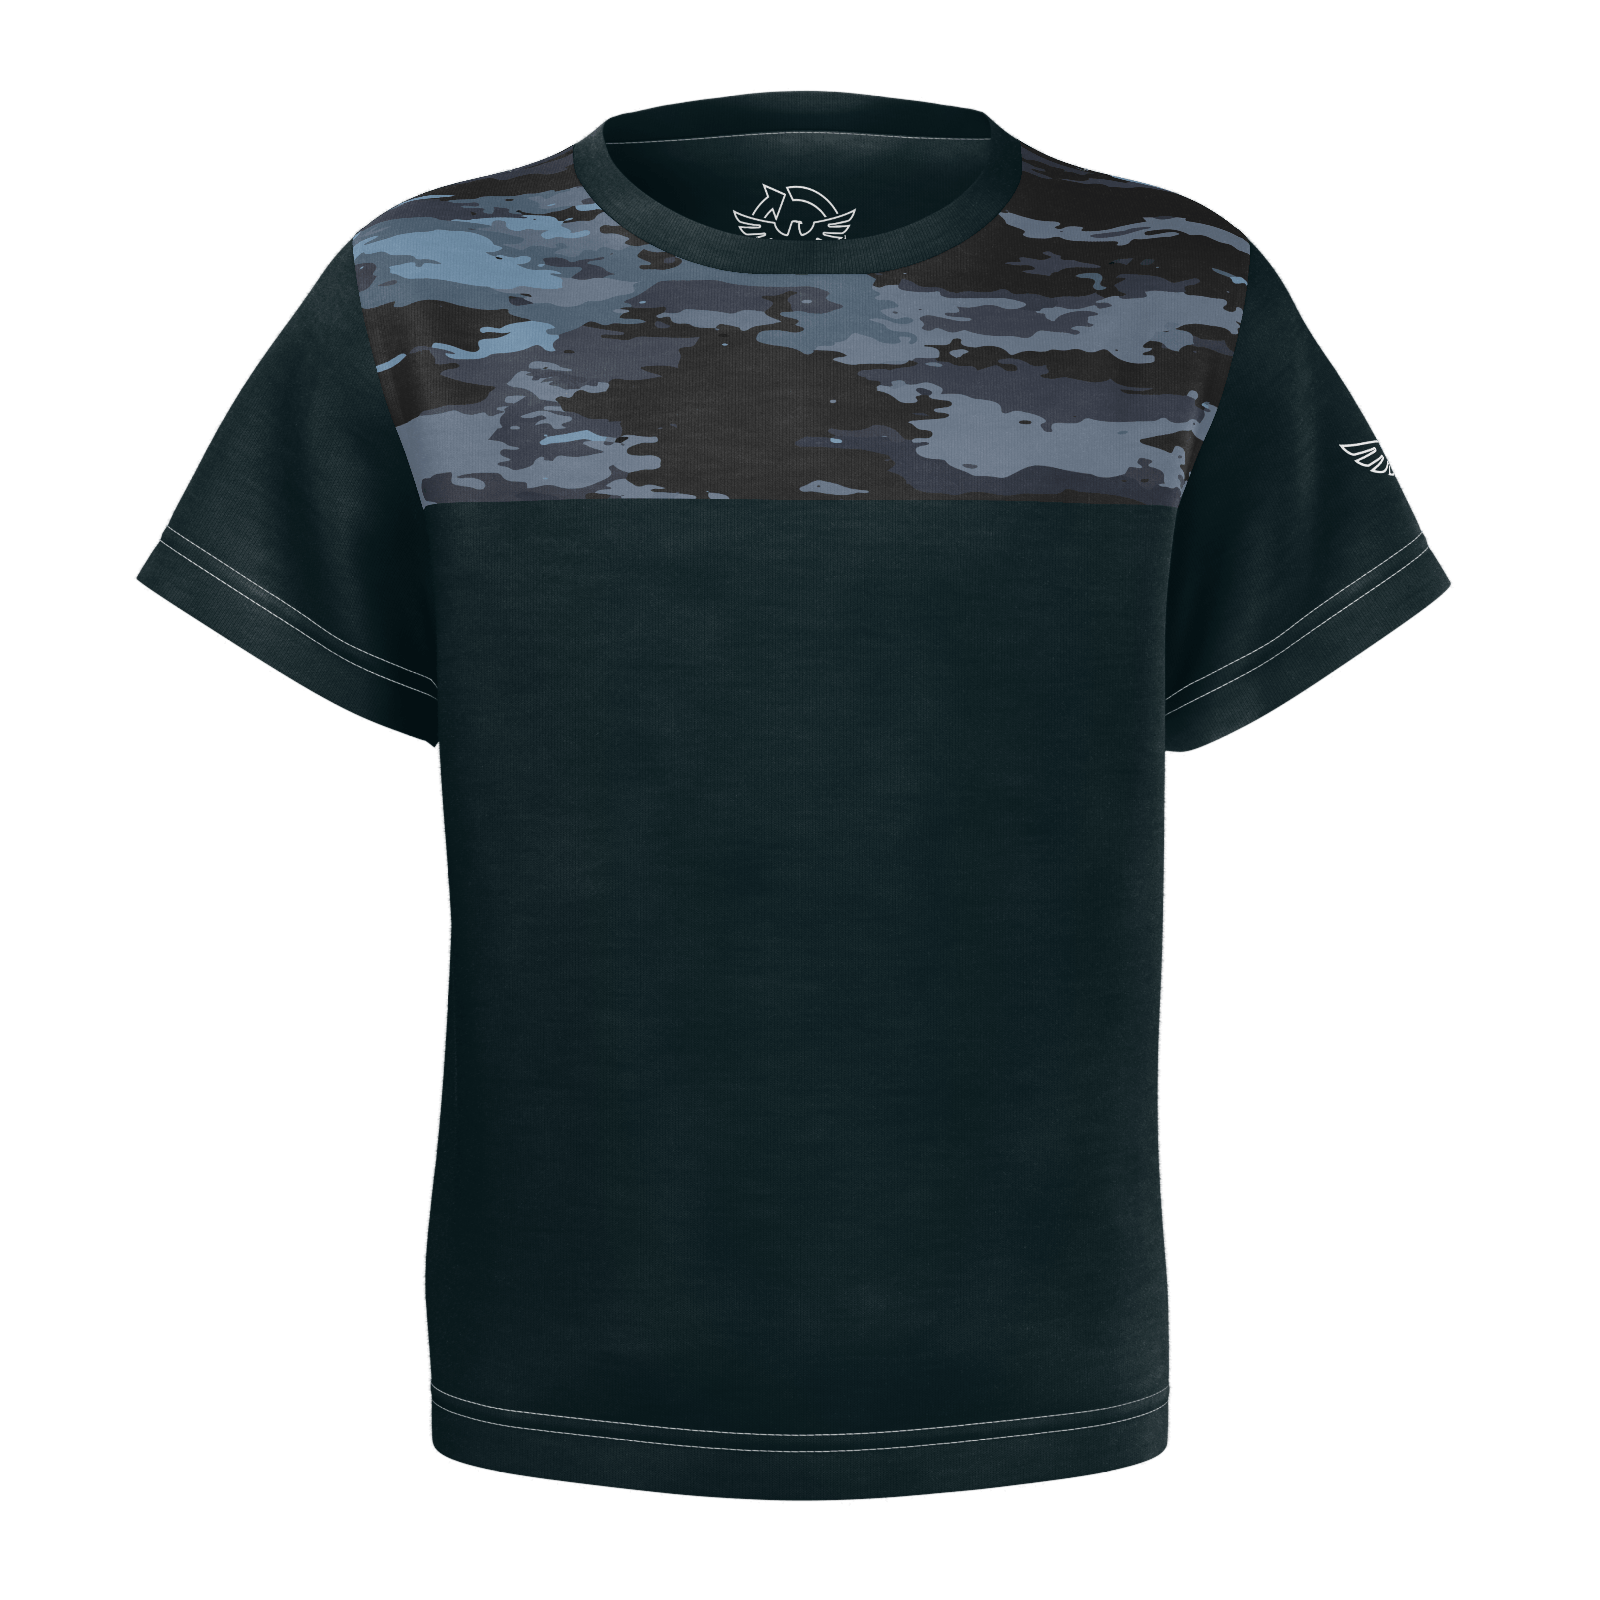 Kids FYC Coast Camo Sustainable Short Sleeve Limited Edition Tee Shirt